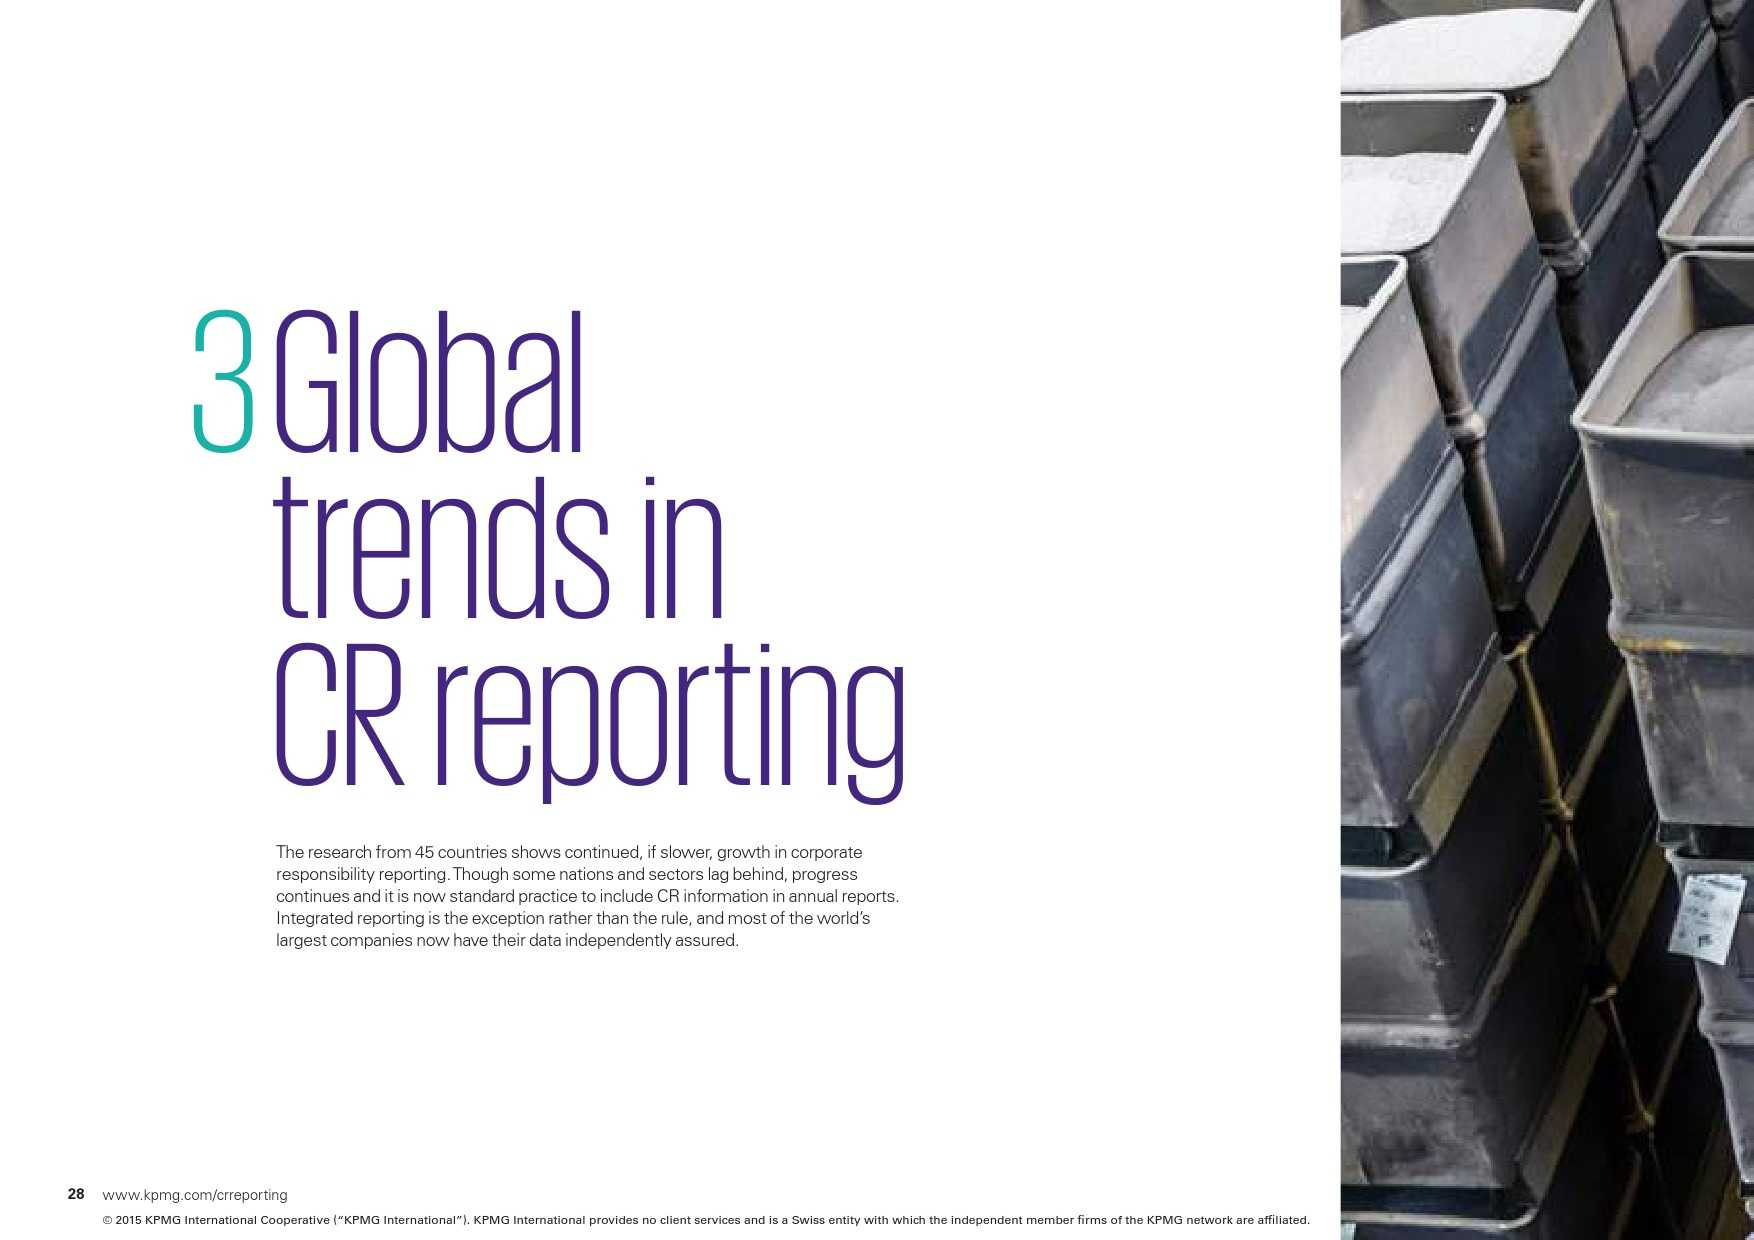 kpmg-international-survey-of-corporate-responsibility-reporting-2015_000028